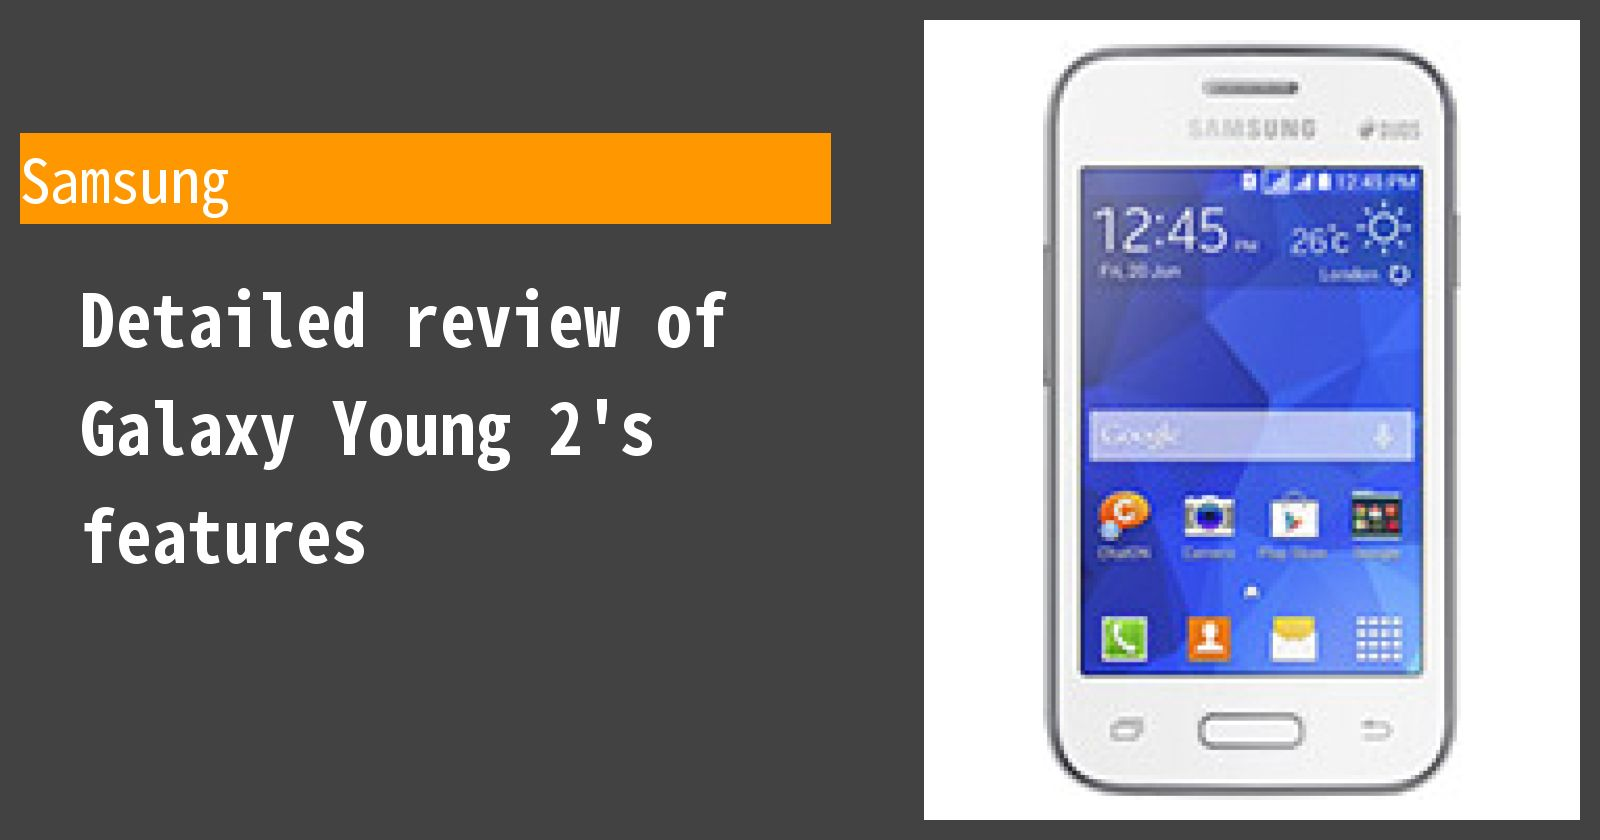 Detailed review of Galaxy Young 2's features